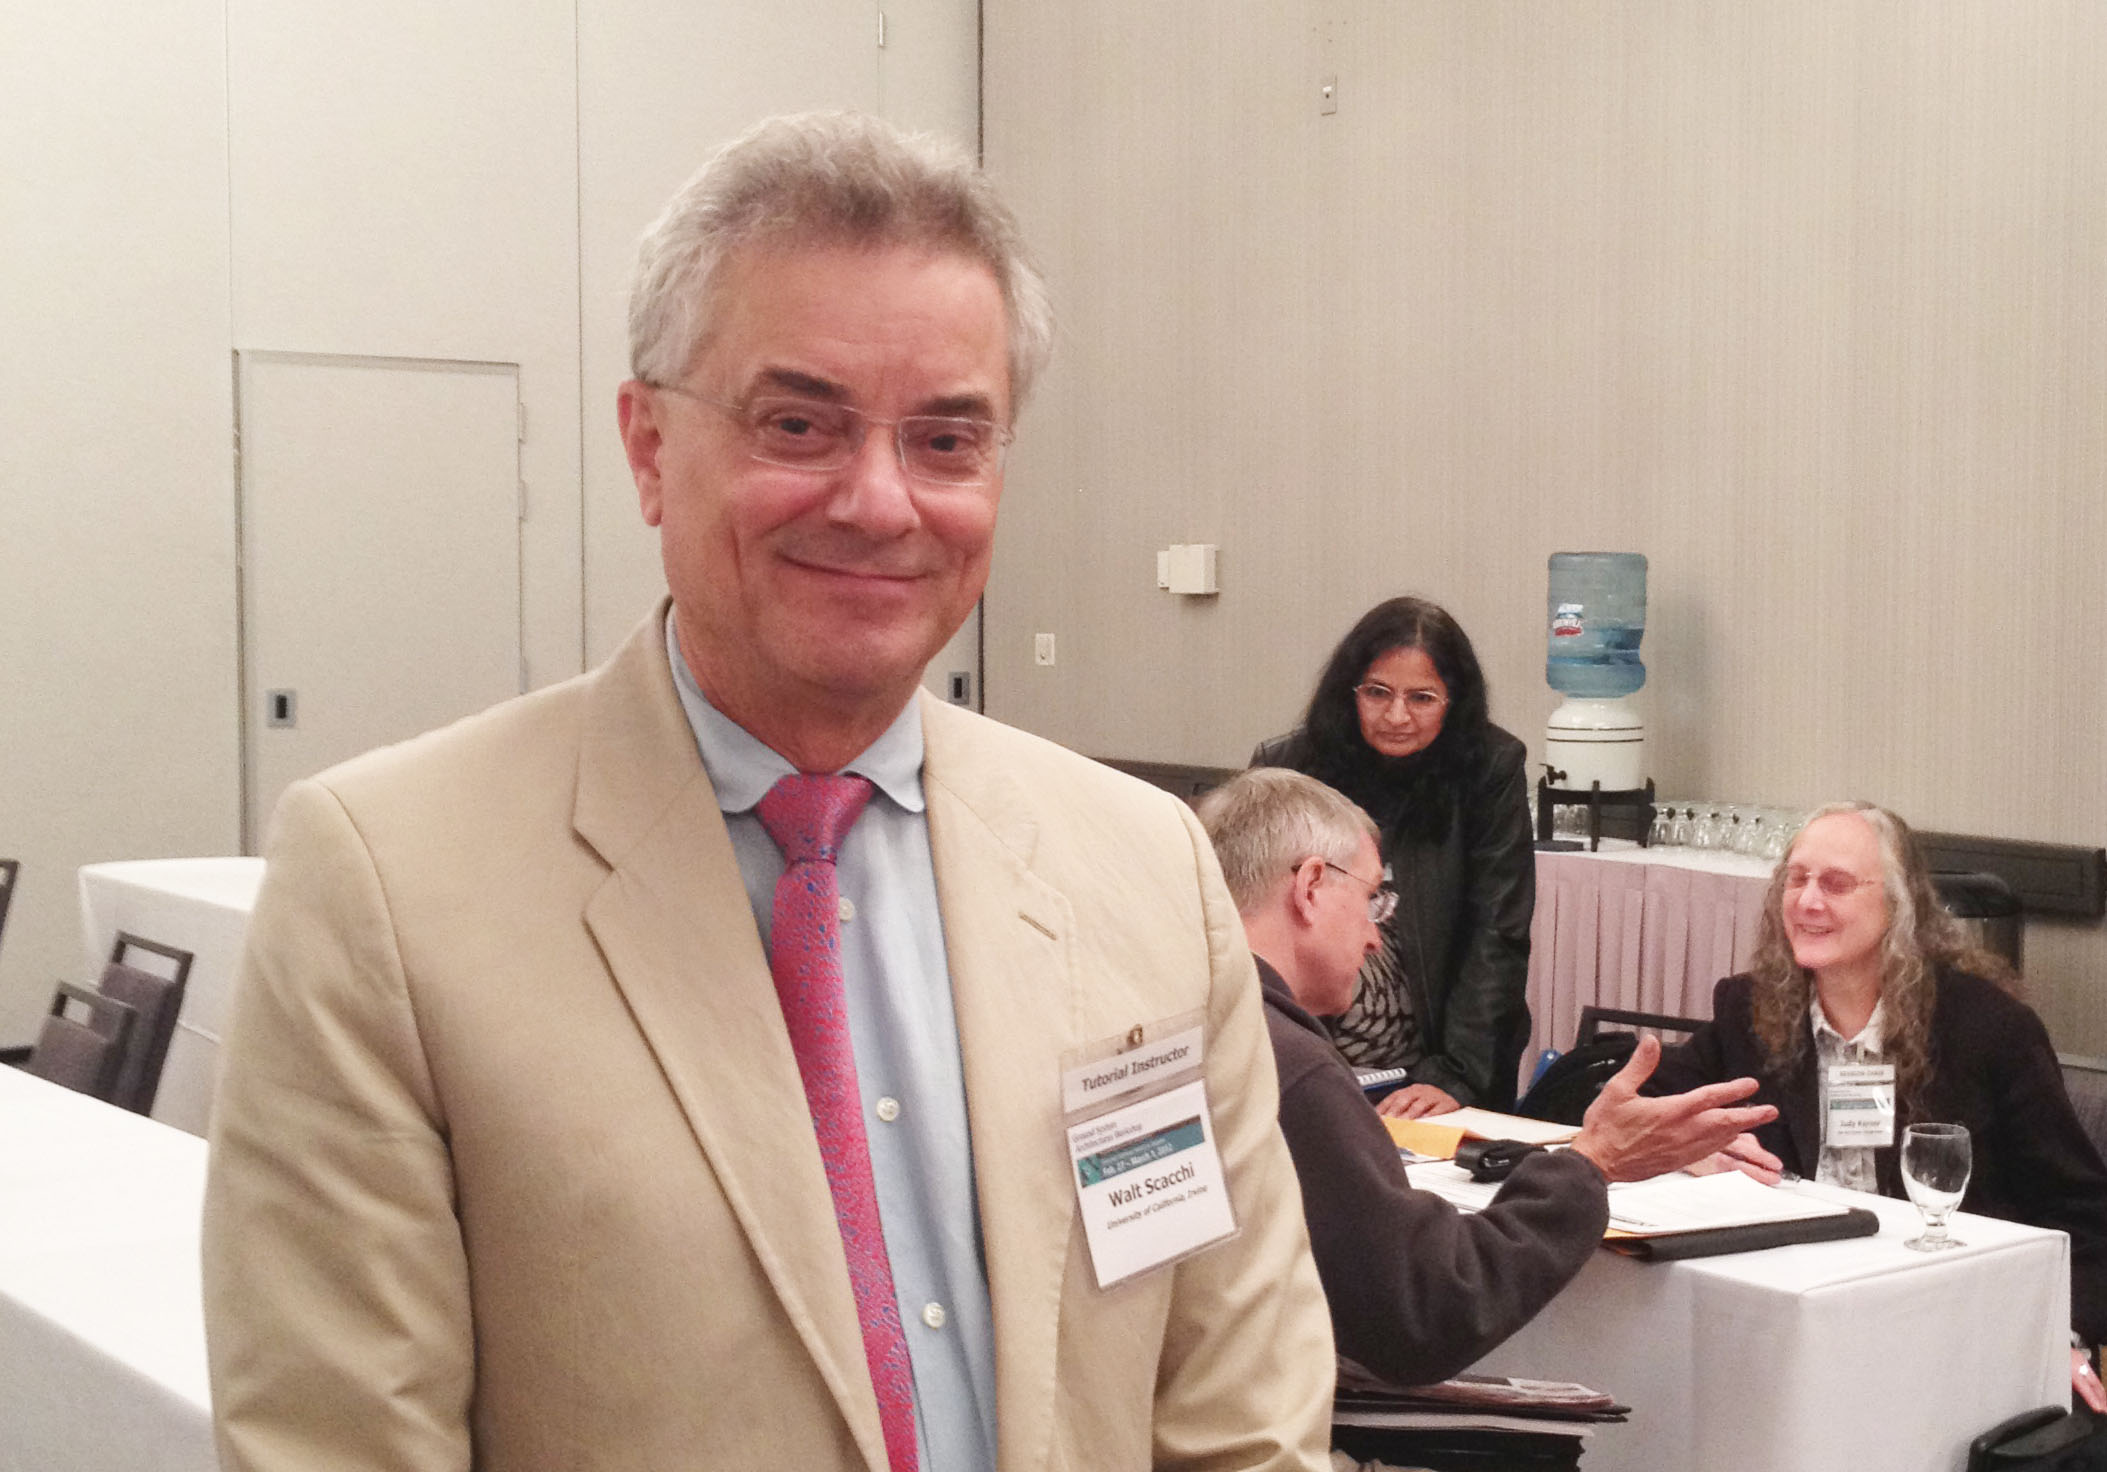 Prof. Scacchi at GSAW 2012